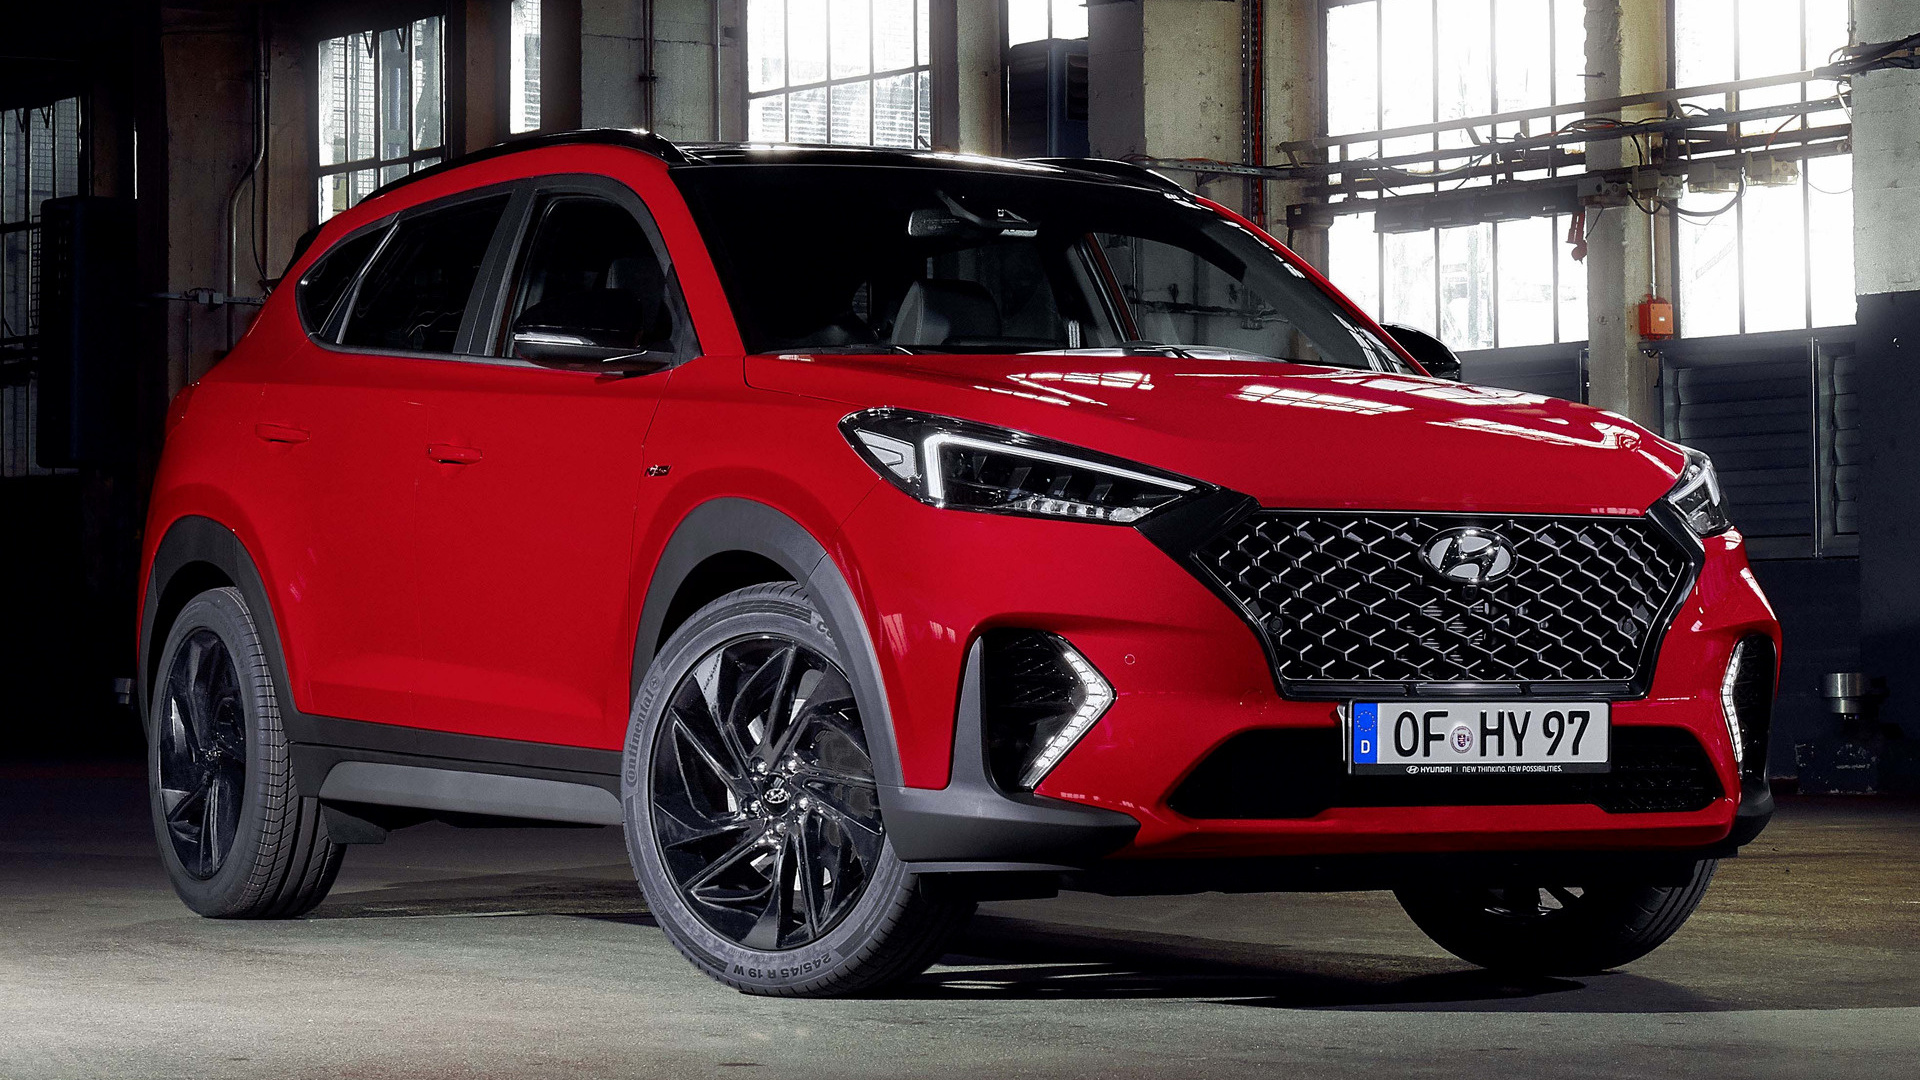 2019 Hyundai Tucson N Line - Wallpapers and HD Images ...